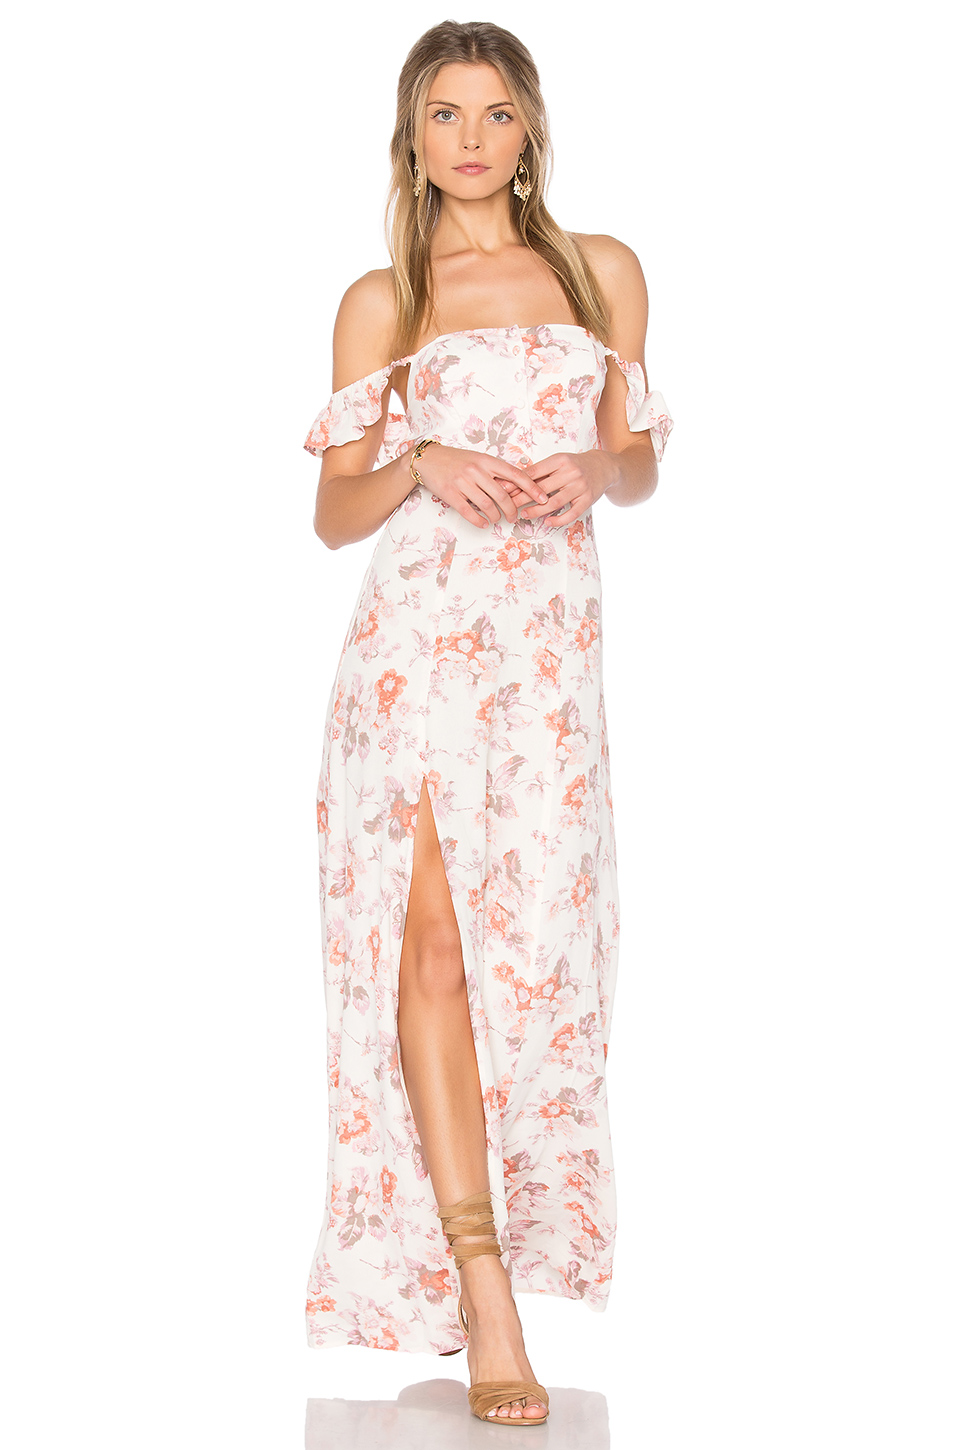 Flynn Skye Bardot Maxi Dress In Ivory